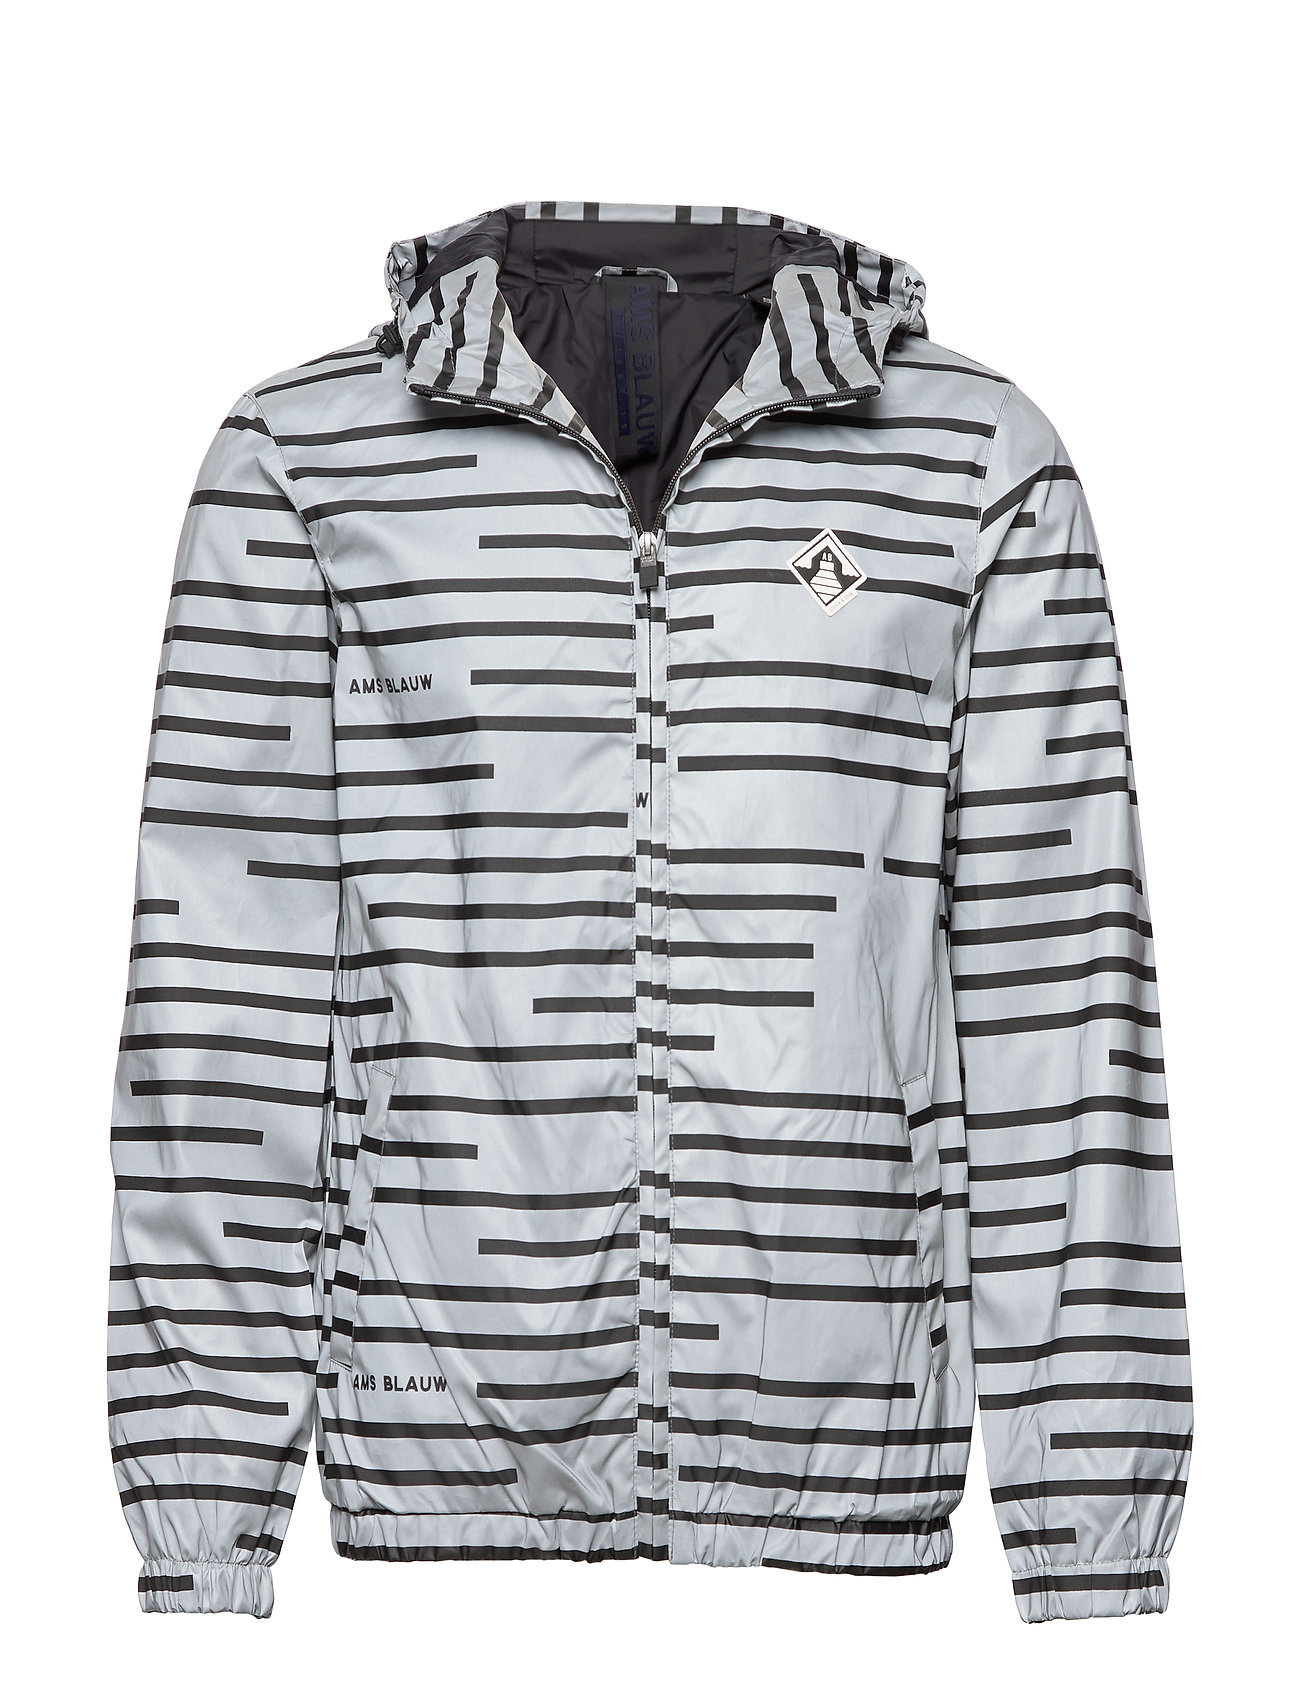 Scotch & Soda Reflective windbreaker Jacket - COMBO A